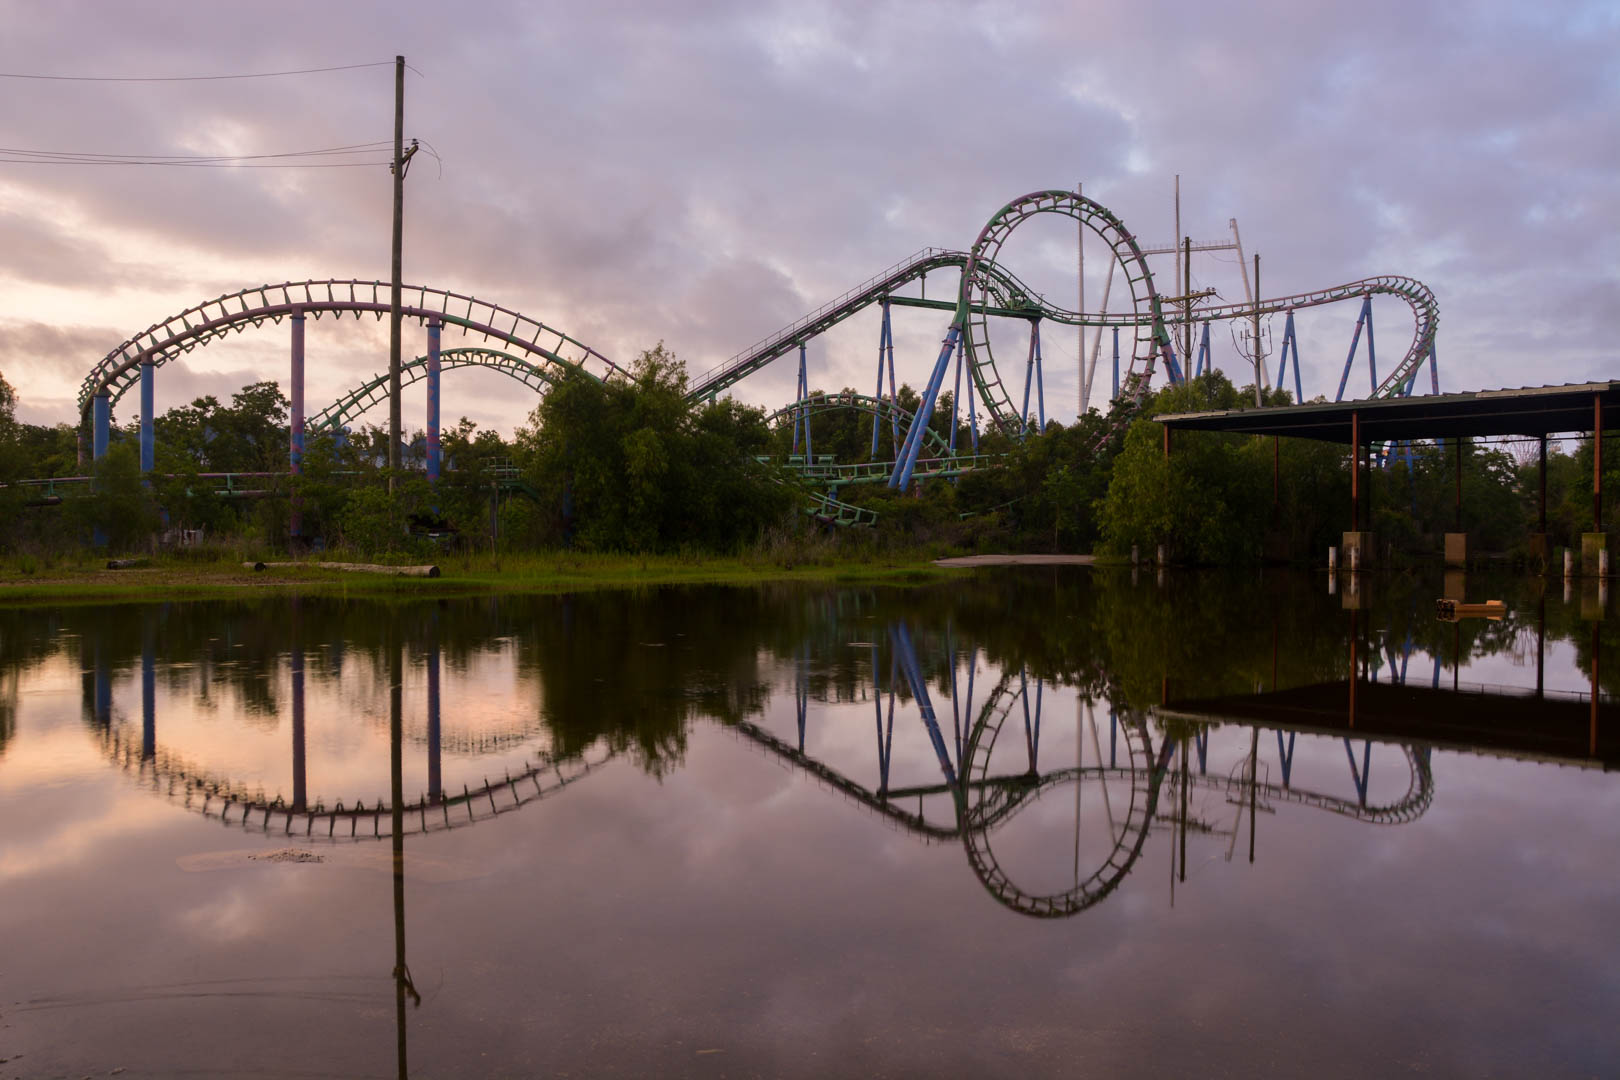 Exploring abandoned theme park: Six Flags New Orleans